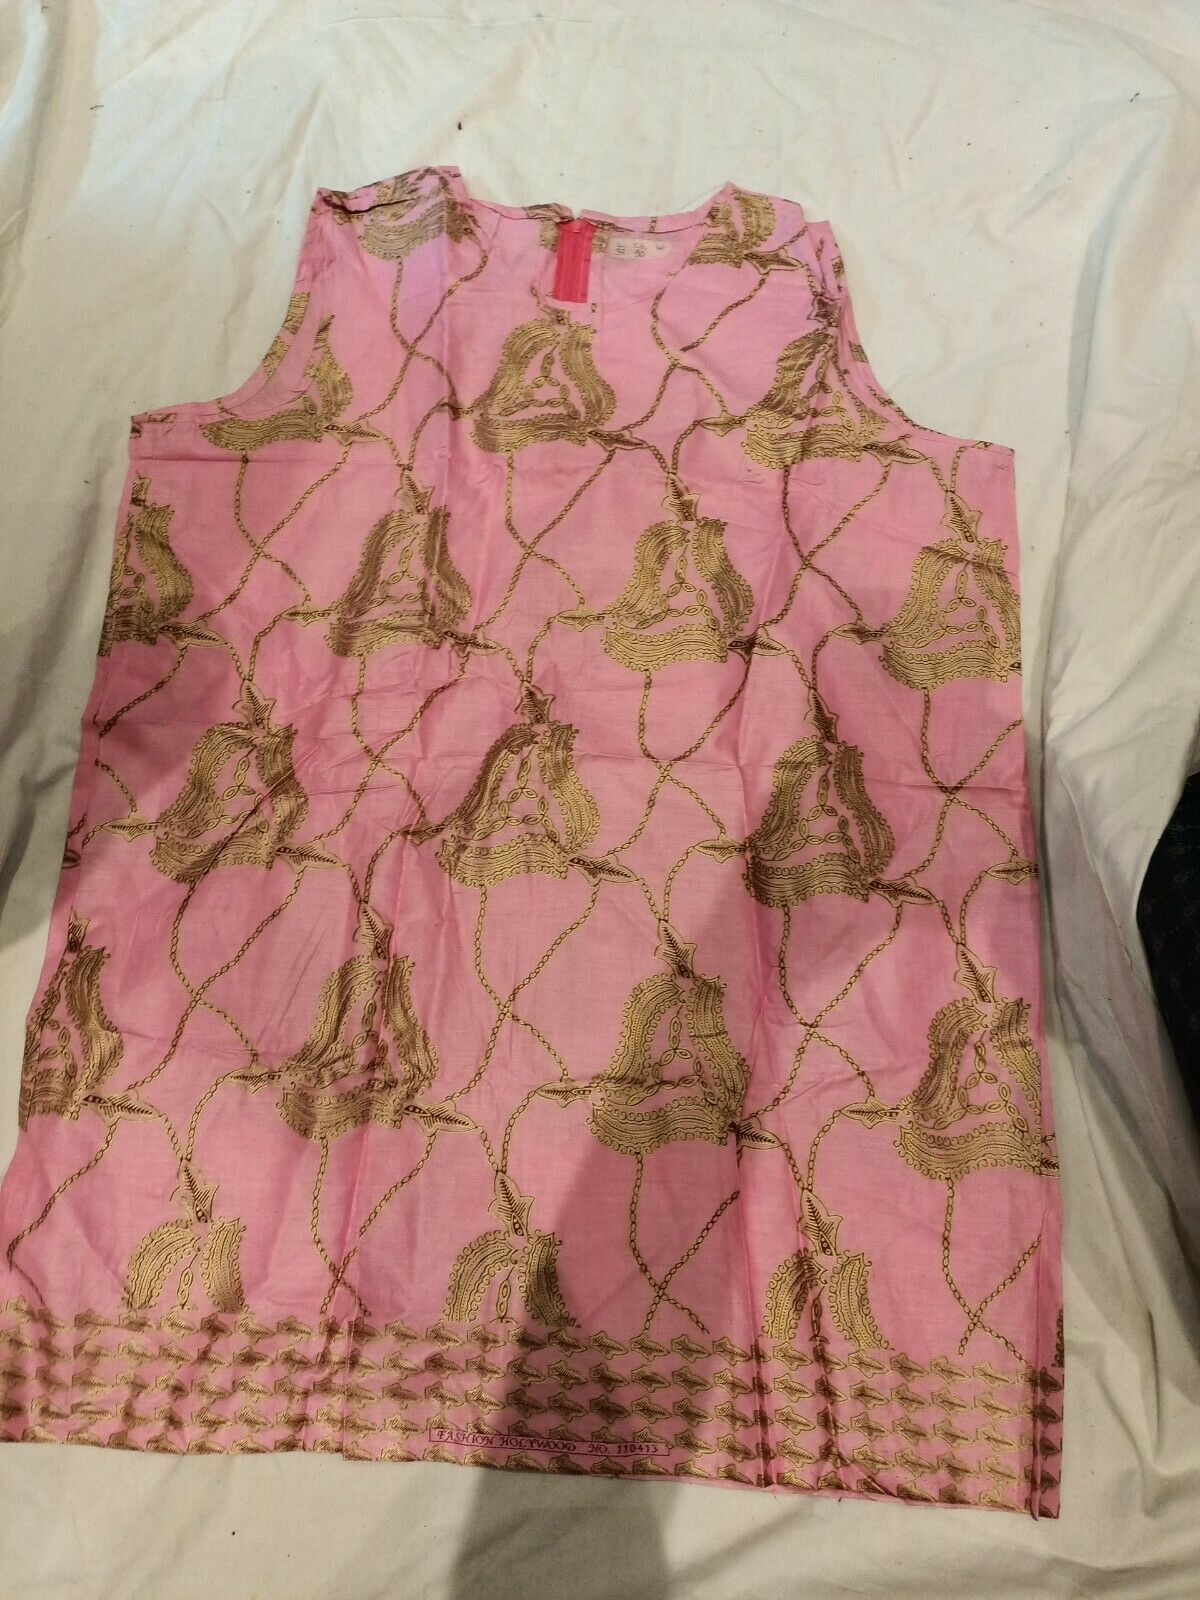 Ladies dress Top in African Print material One size Plus tofit chest up to 50Rin